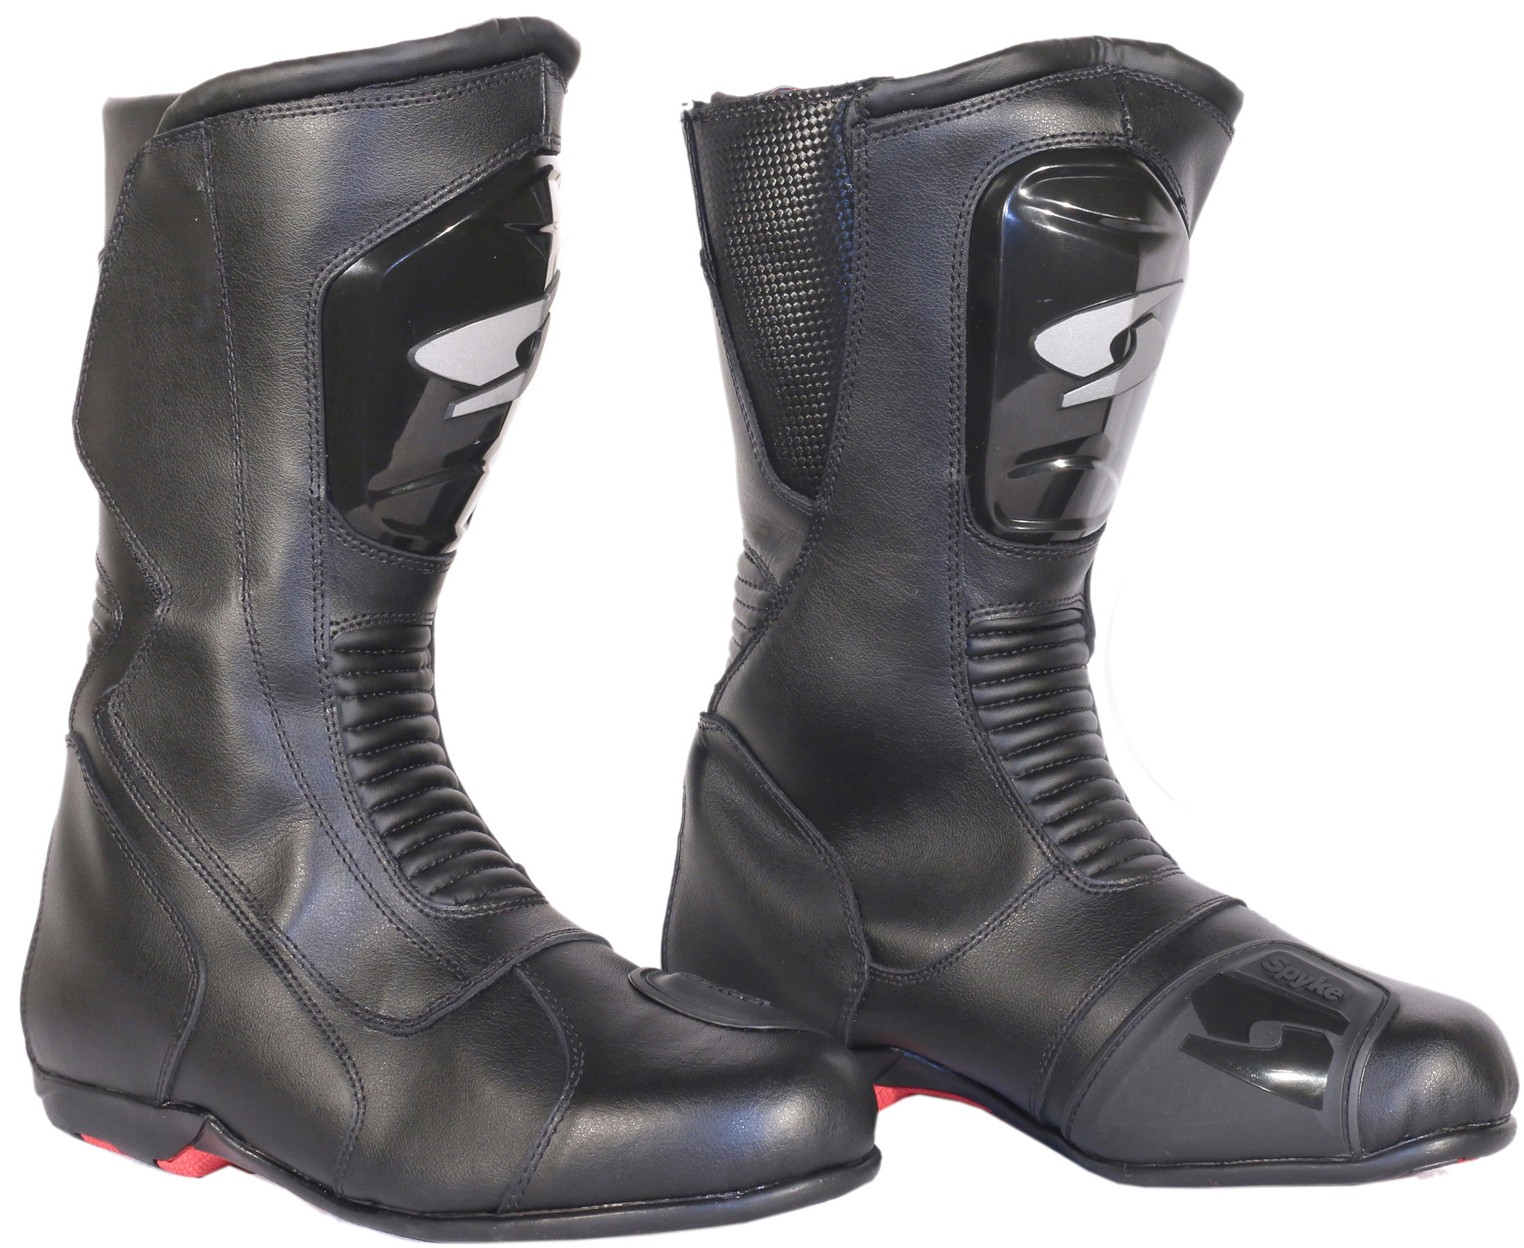 Spyke Trophy WP Leather Boots, Spyke Trophy WP Motorcycle Boots